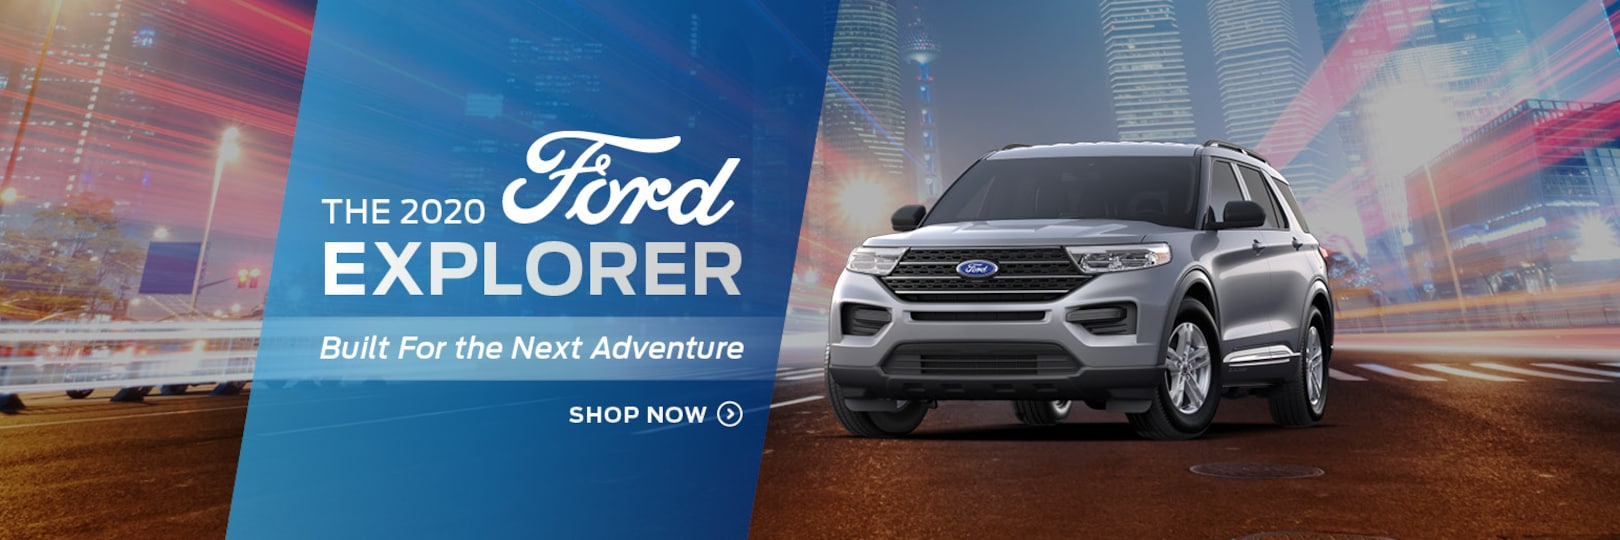 Car Dealerships In Sherman Tx >> Bob Utter Ford Lincoln Sherman Tx New Used Ford Dealership